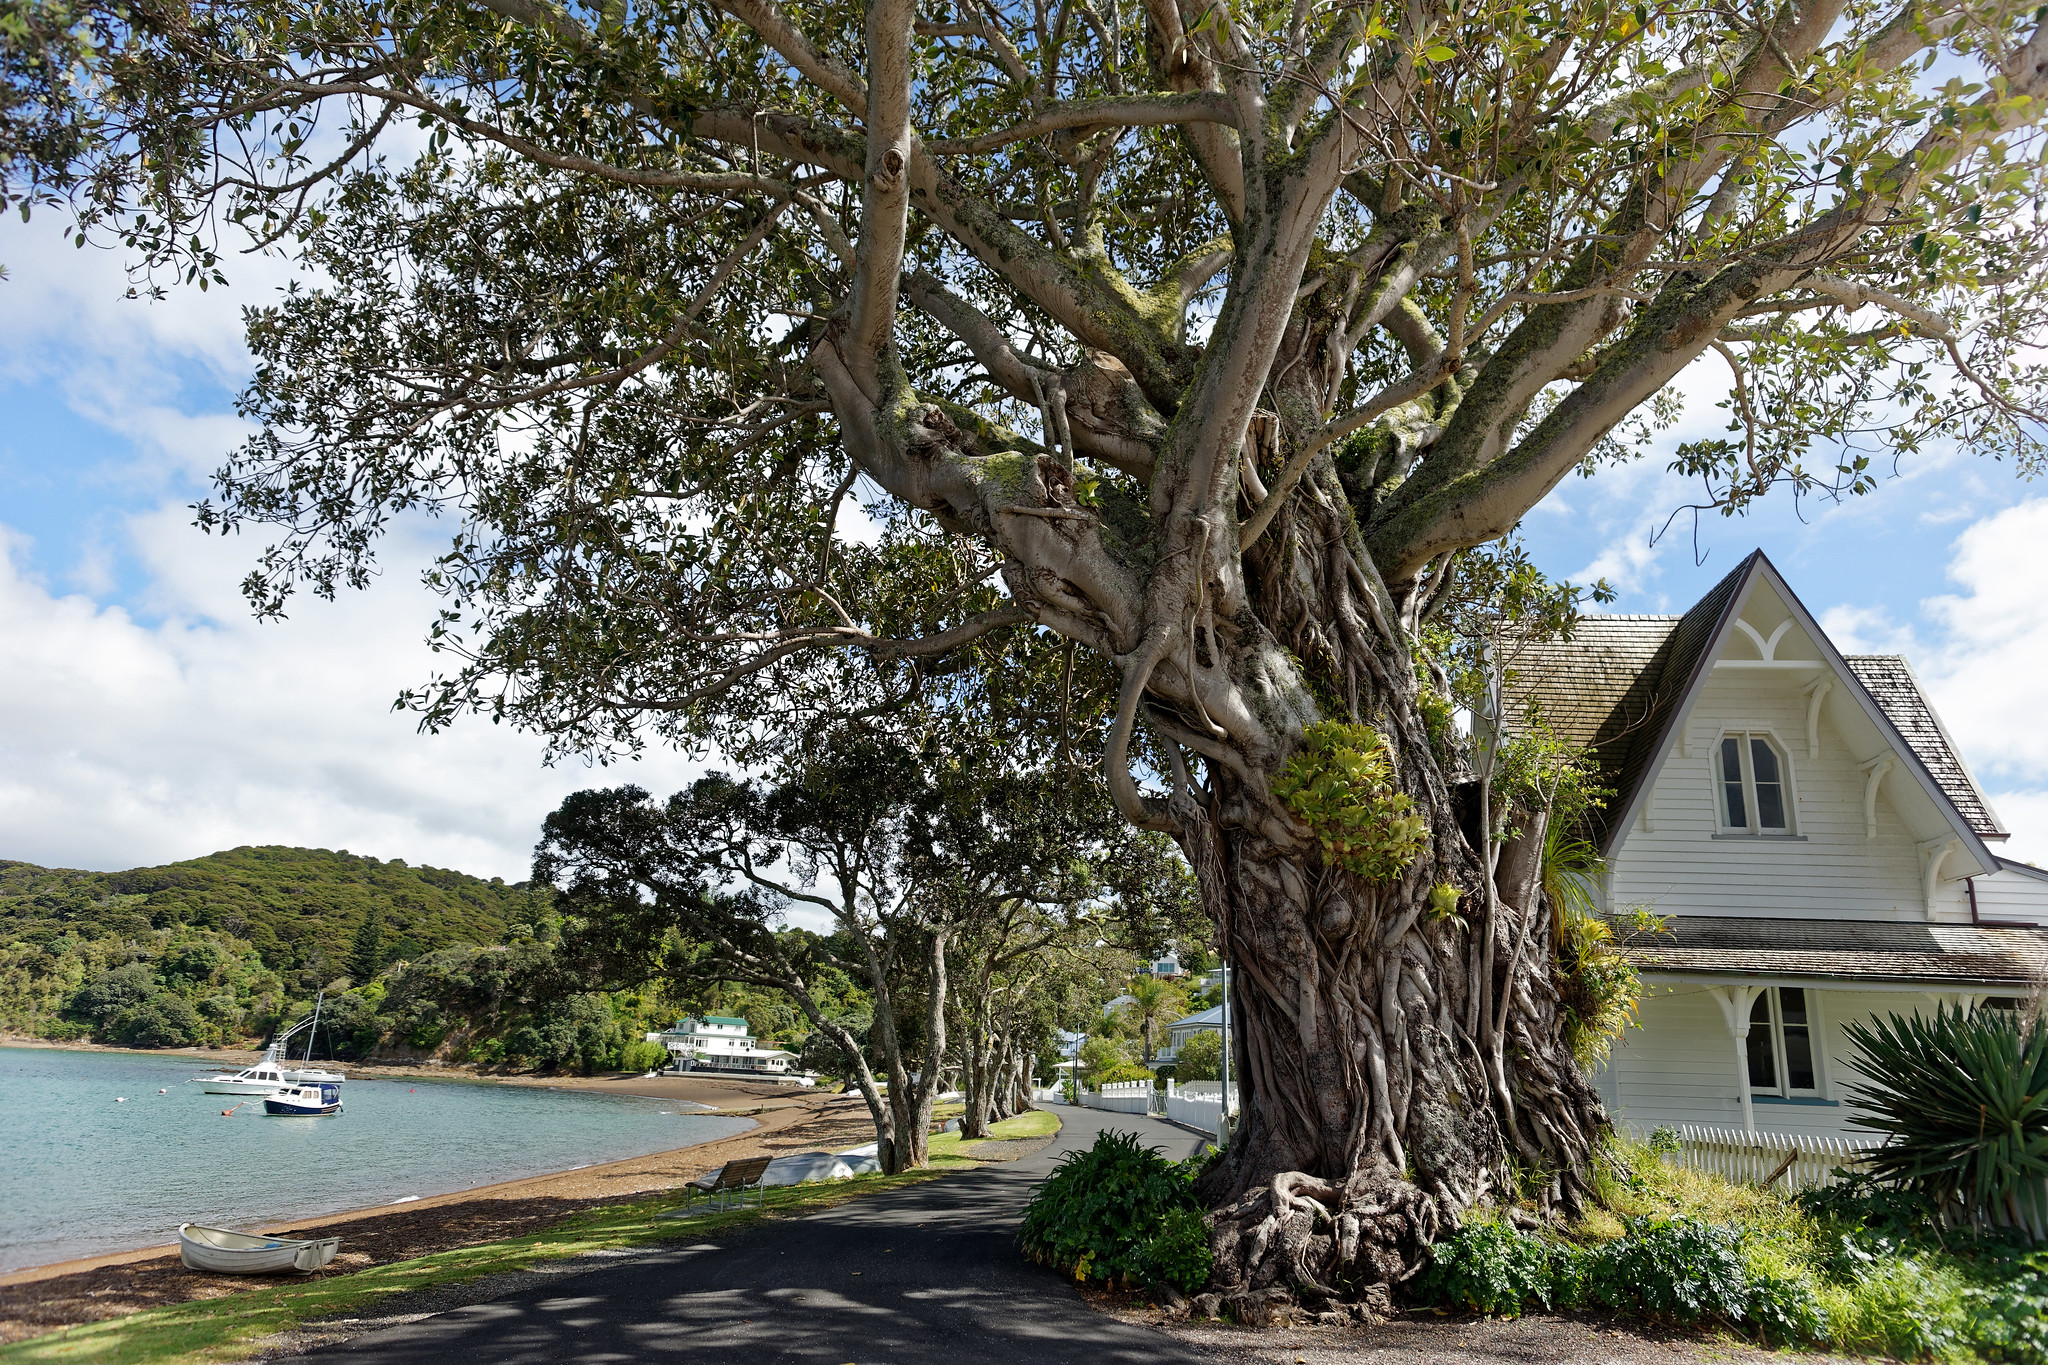 Moreton Bay Fig Tree - Russell, New Zealand